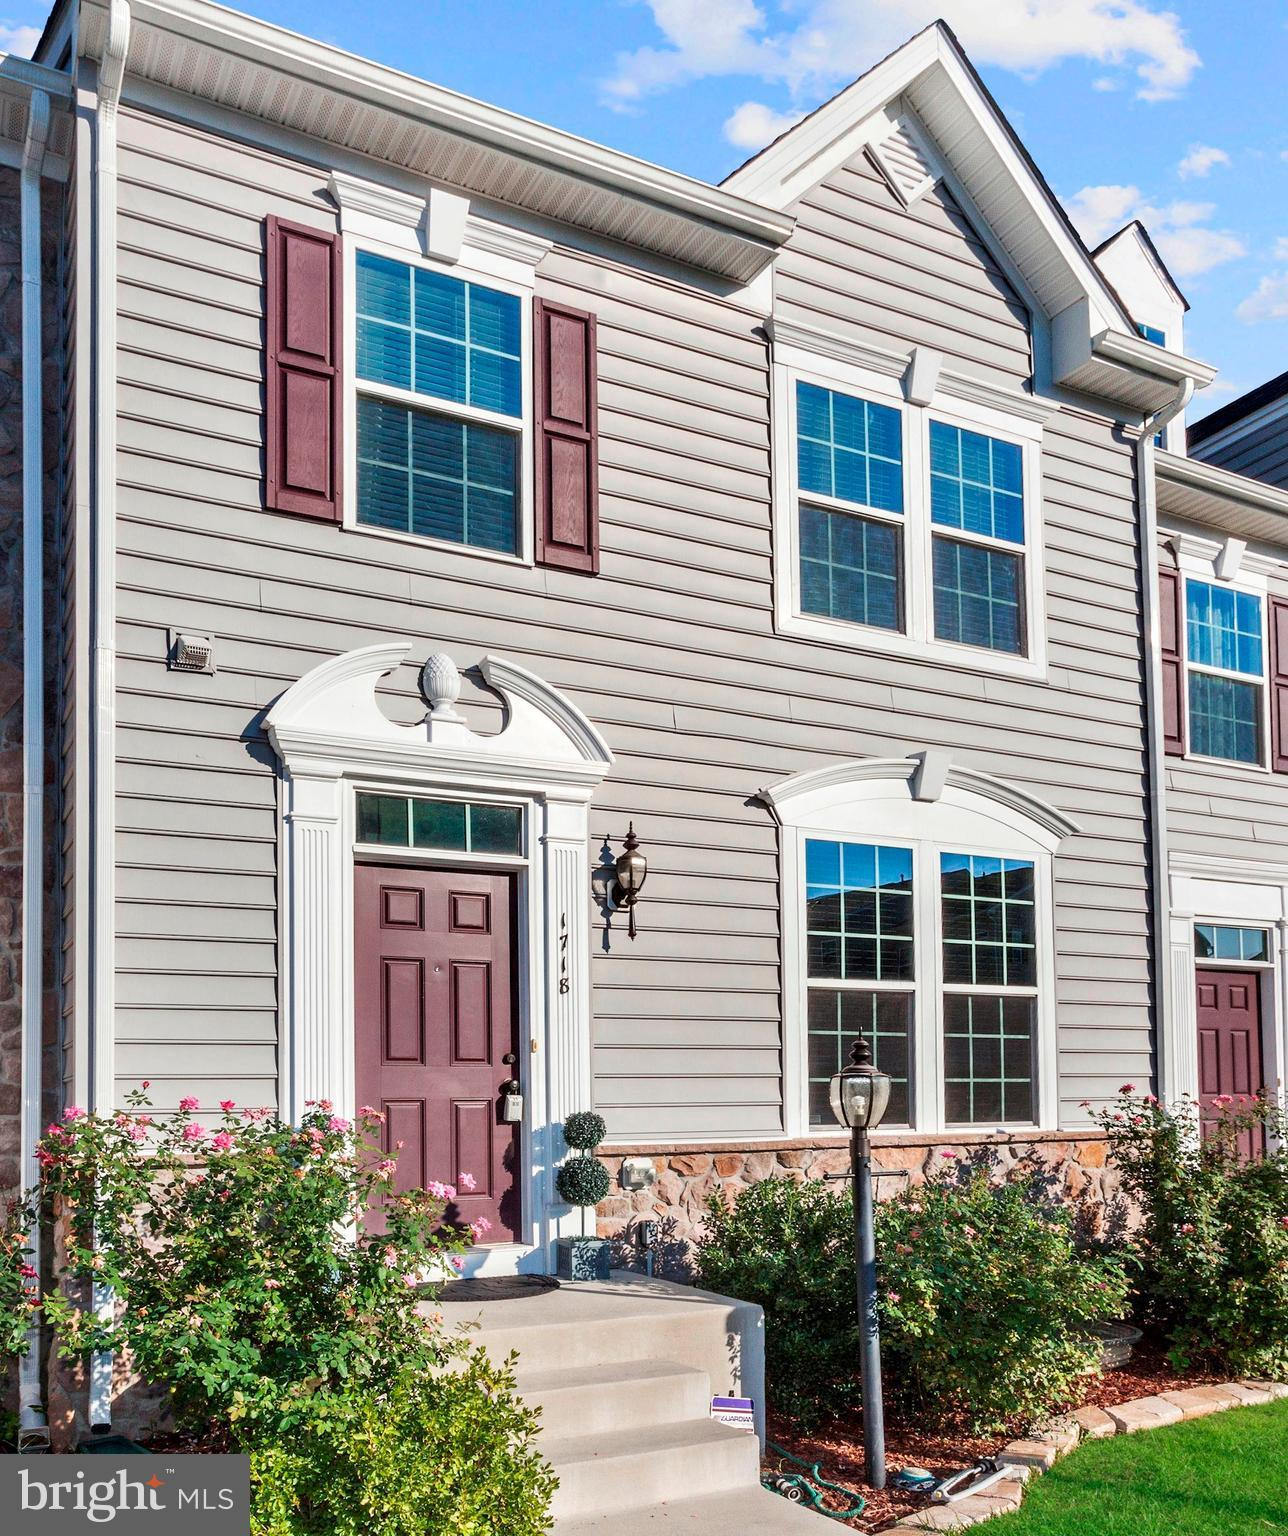 Stunning 4 bed town home loaded with gleaming hardwood floors, crown/chair molding, upgraded kitchen with granite. island, ss appliances, finished walkout basement with wet bar, stamped concrete patio, deck and backs to trees.